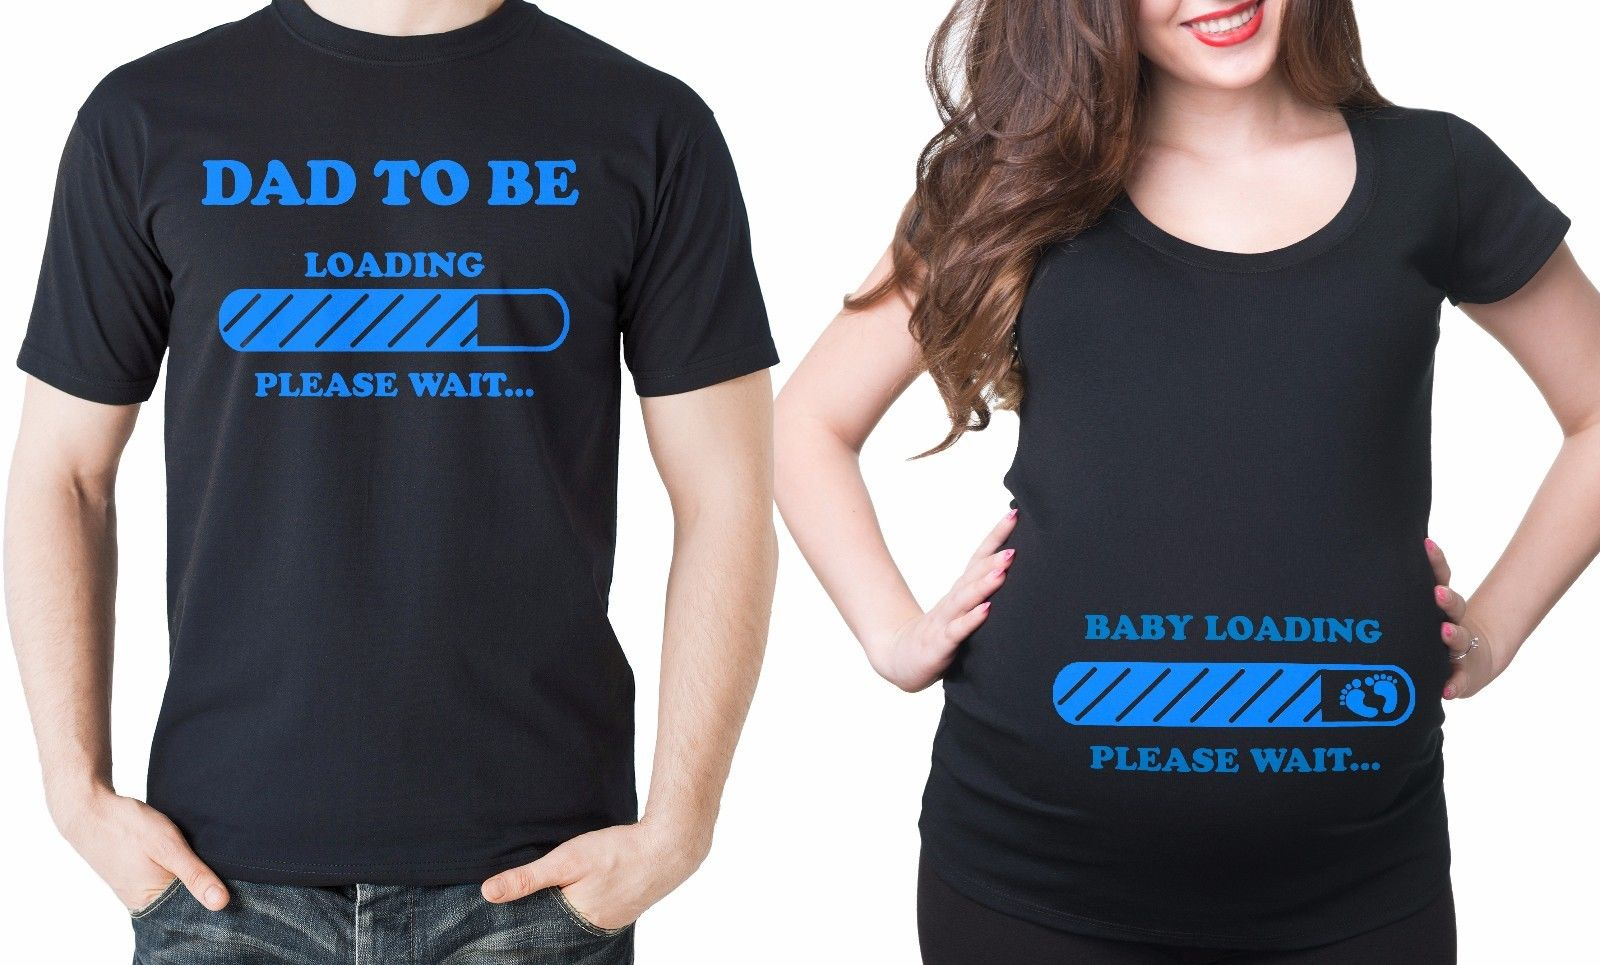 Gildan Pregnancy Funny Couple T-shirts Baby Loading Dad To Be Maternity Baby Shower Tee ...